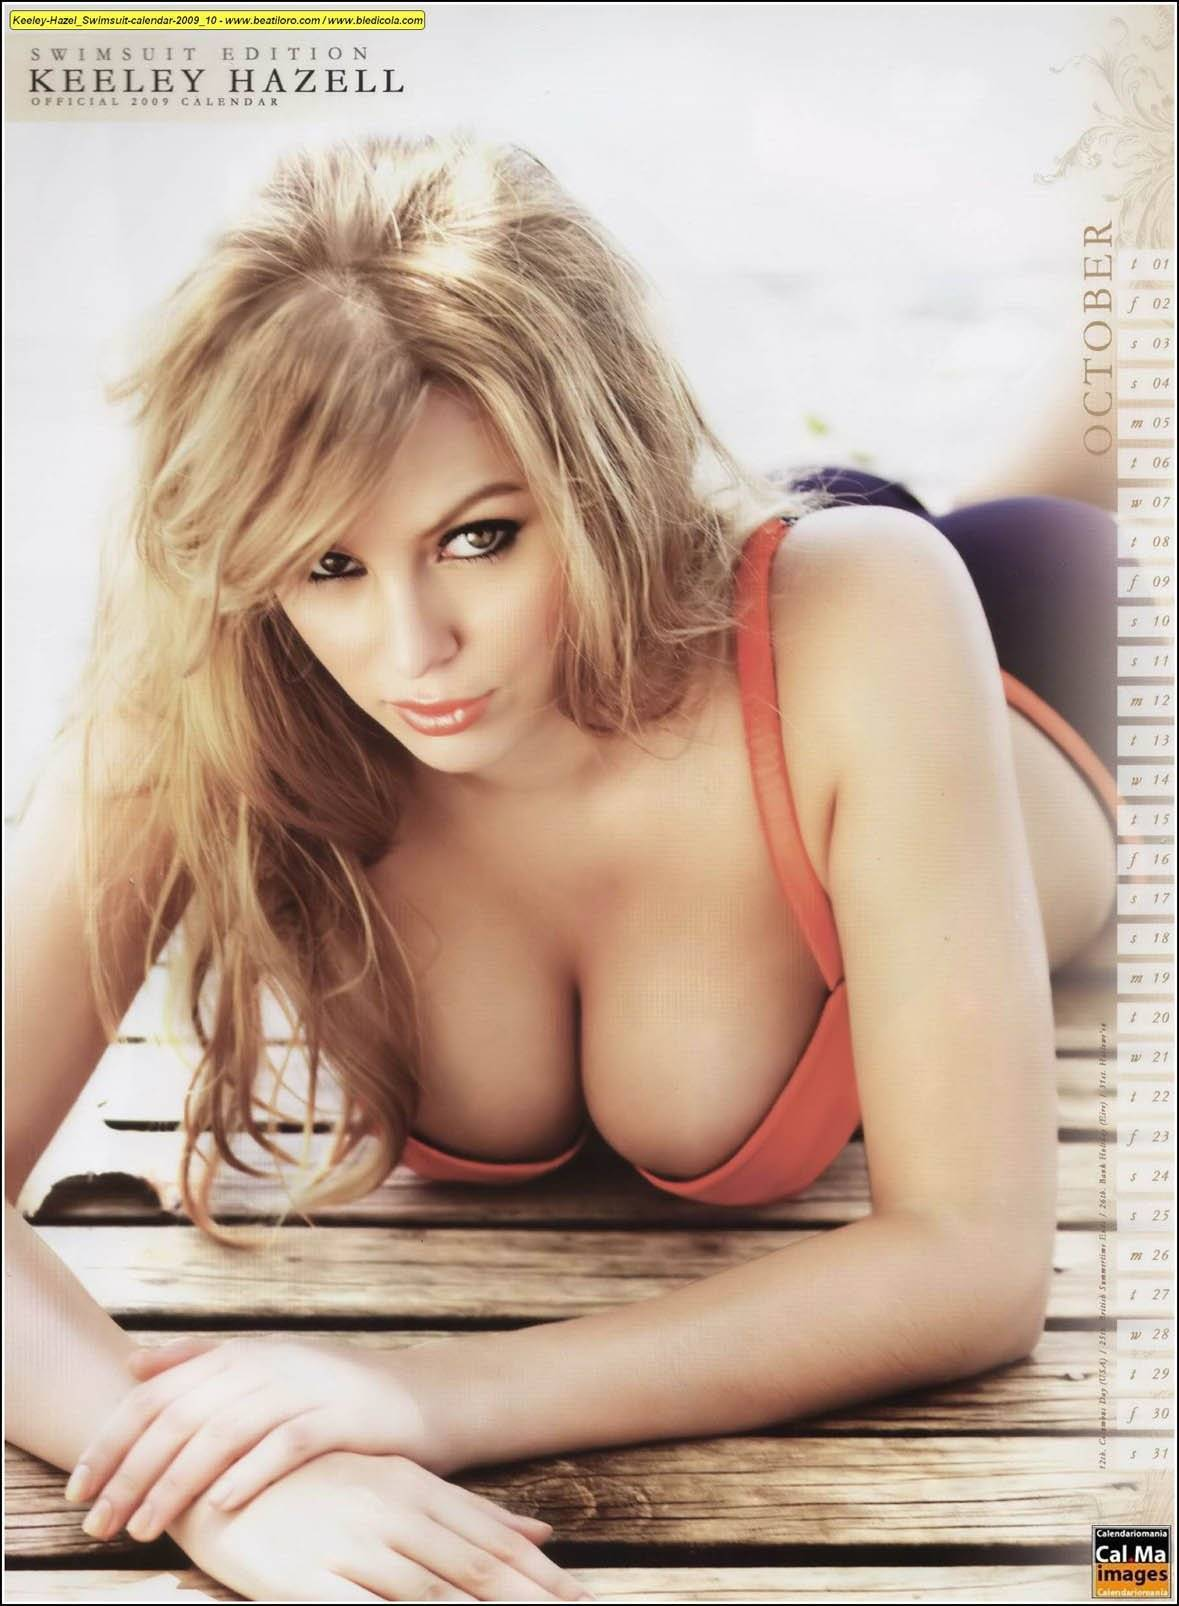 Keeley hazell — wikipedia republished // wiki 2